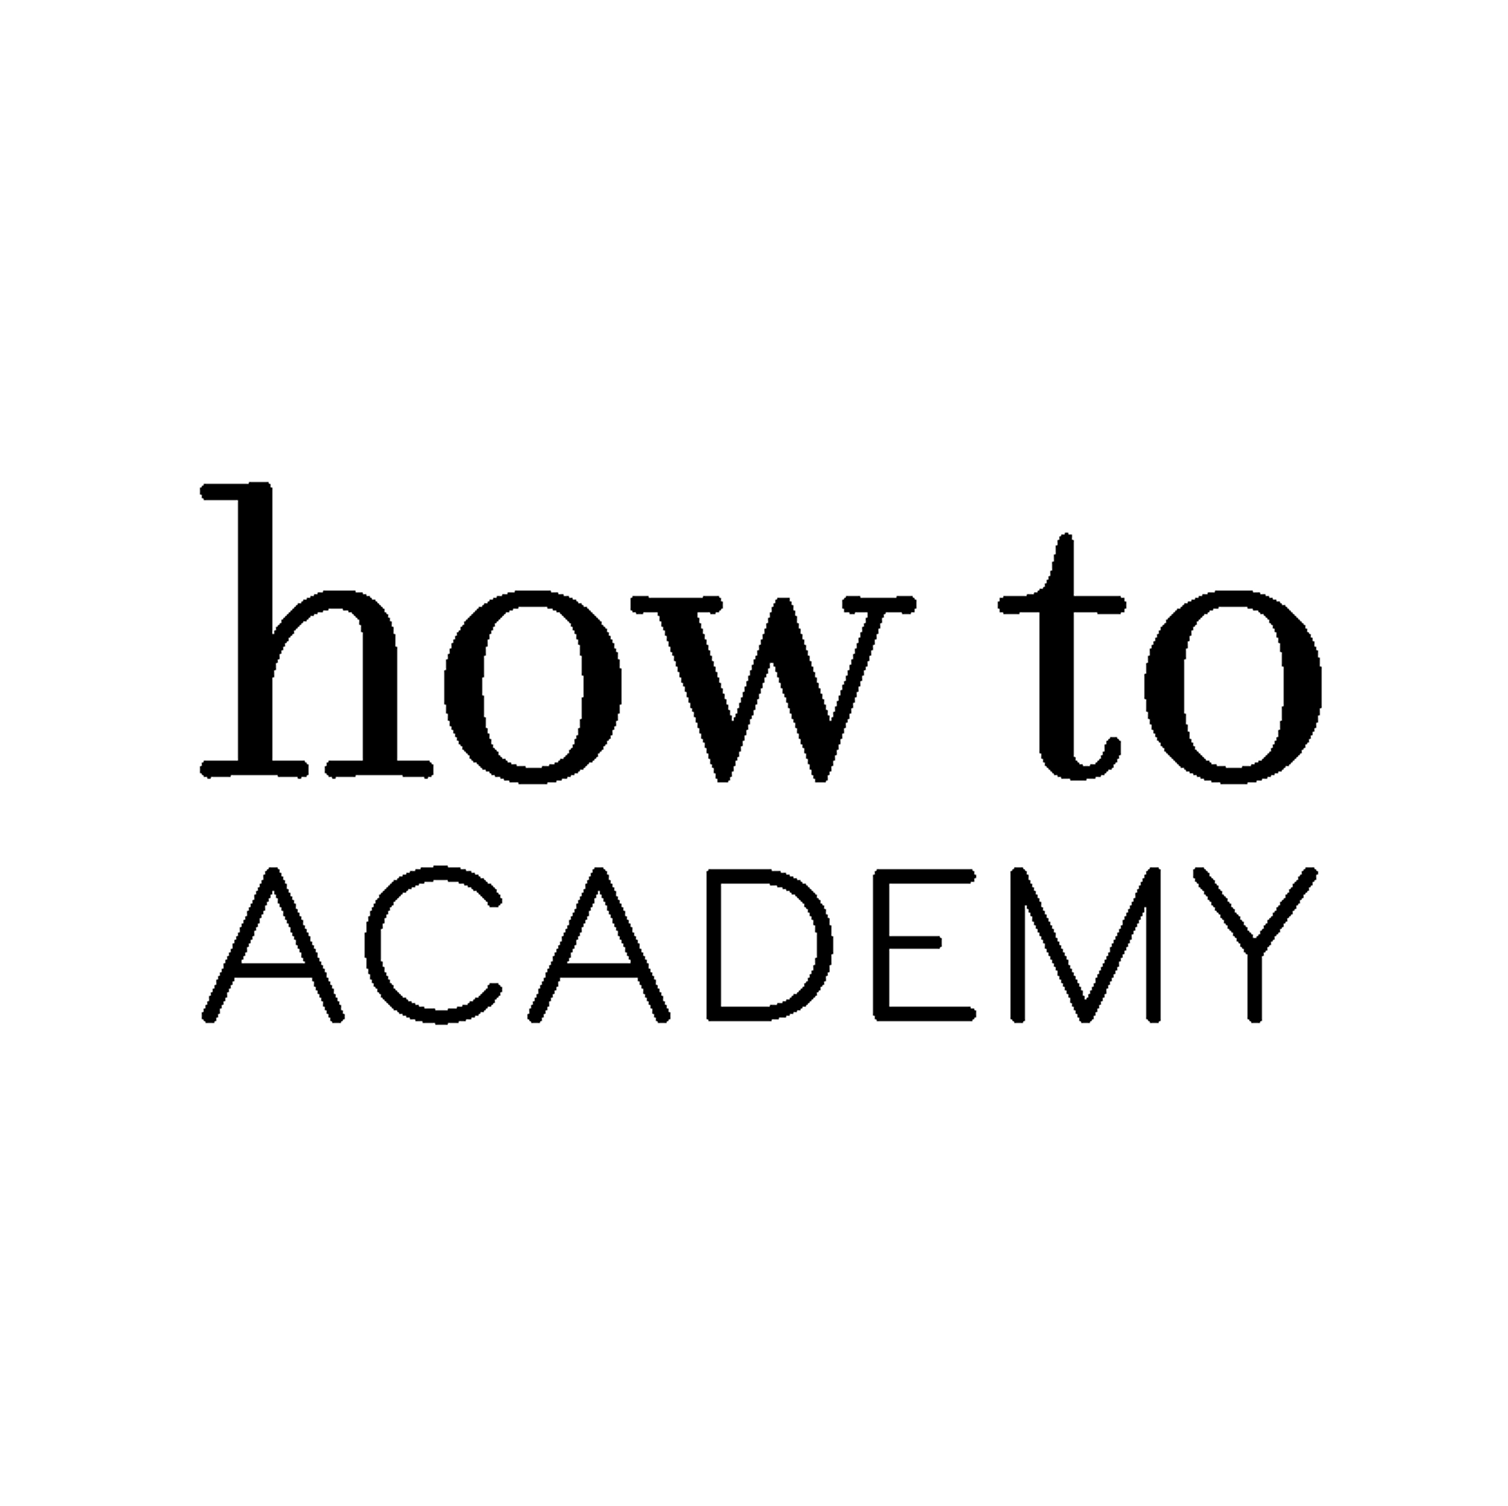 how to: Academy